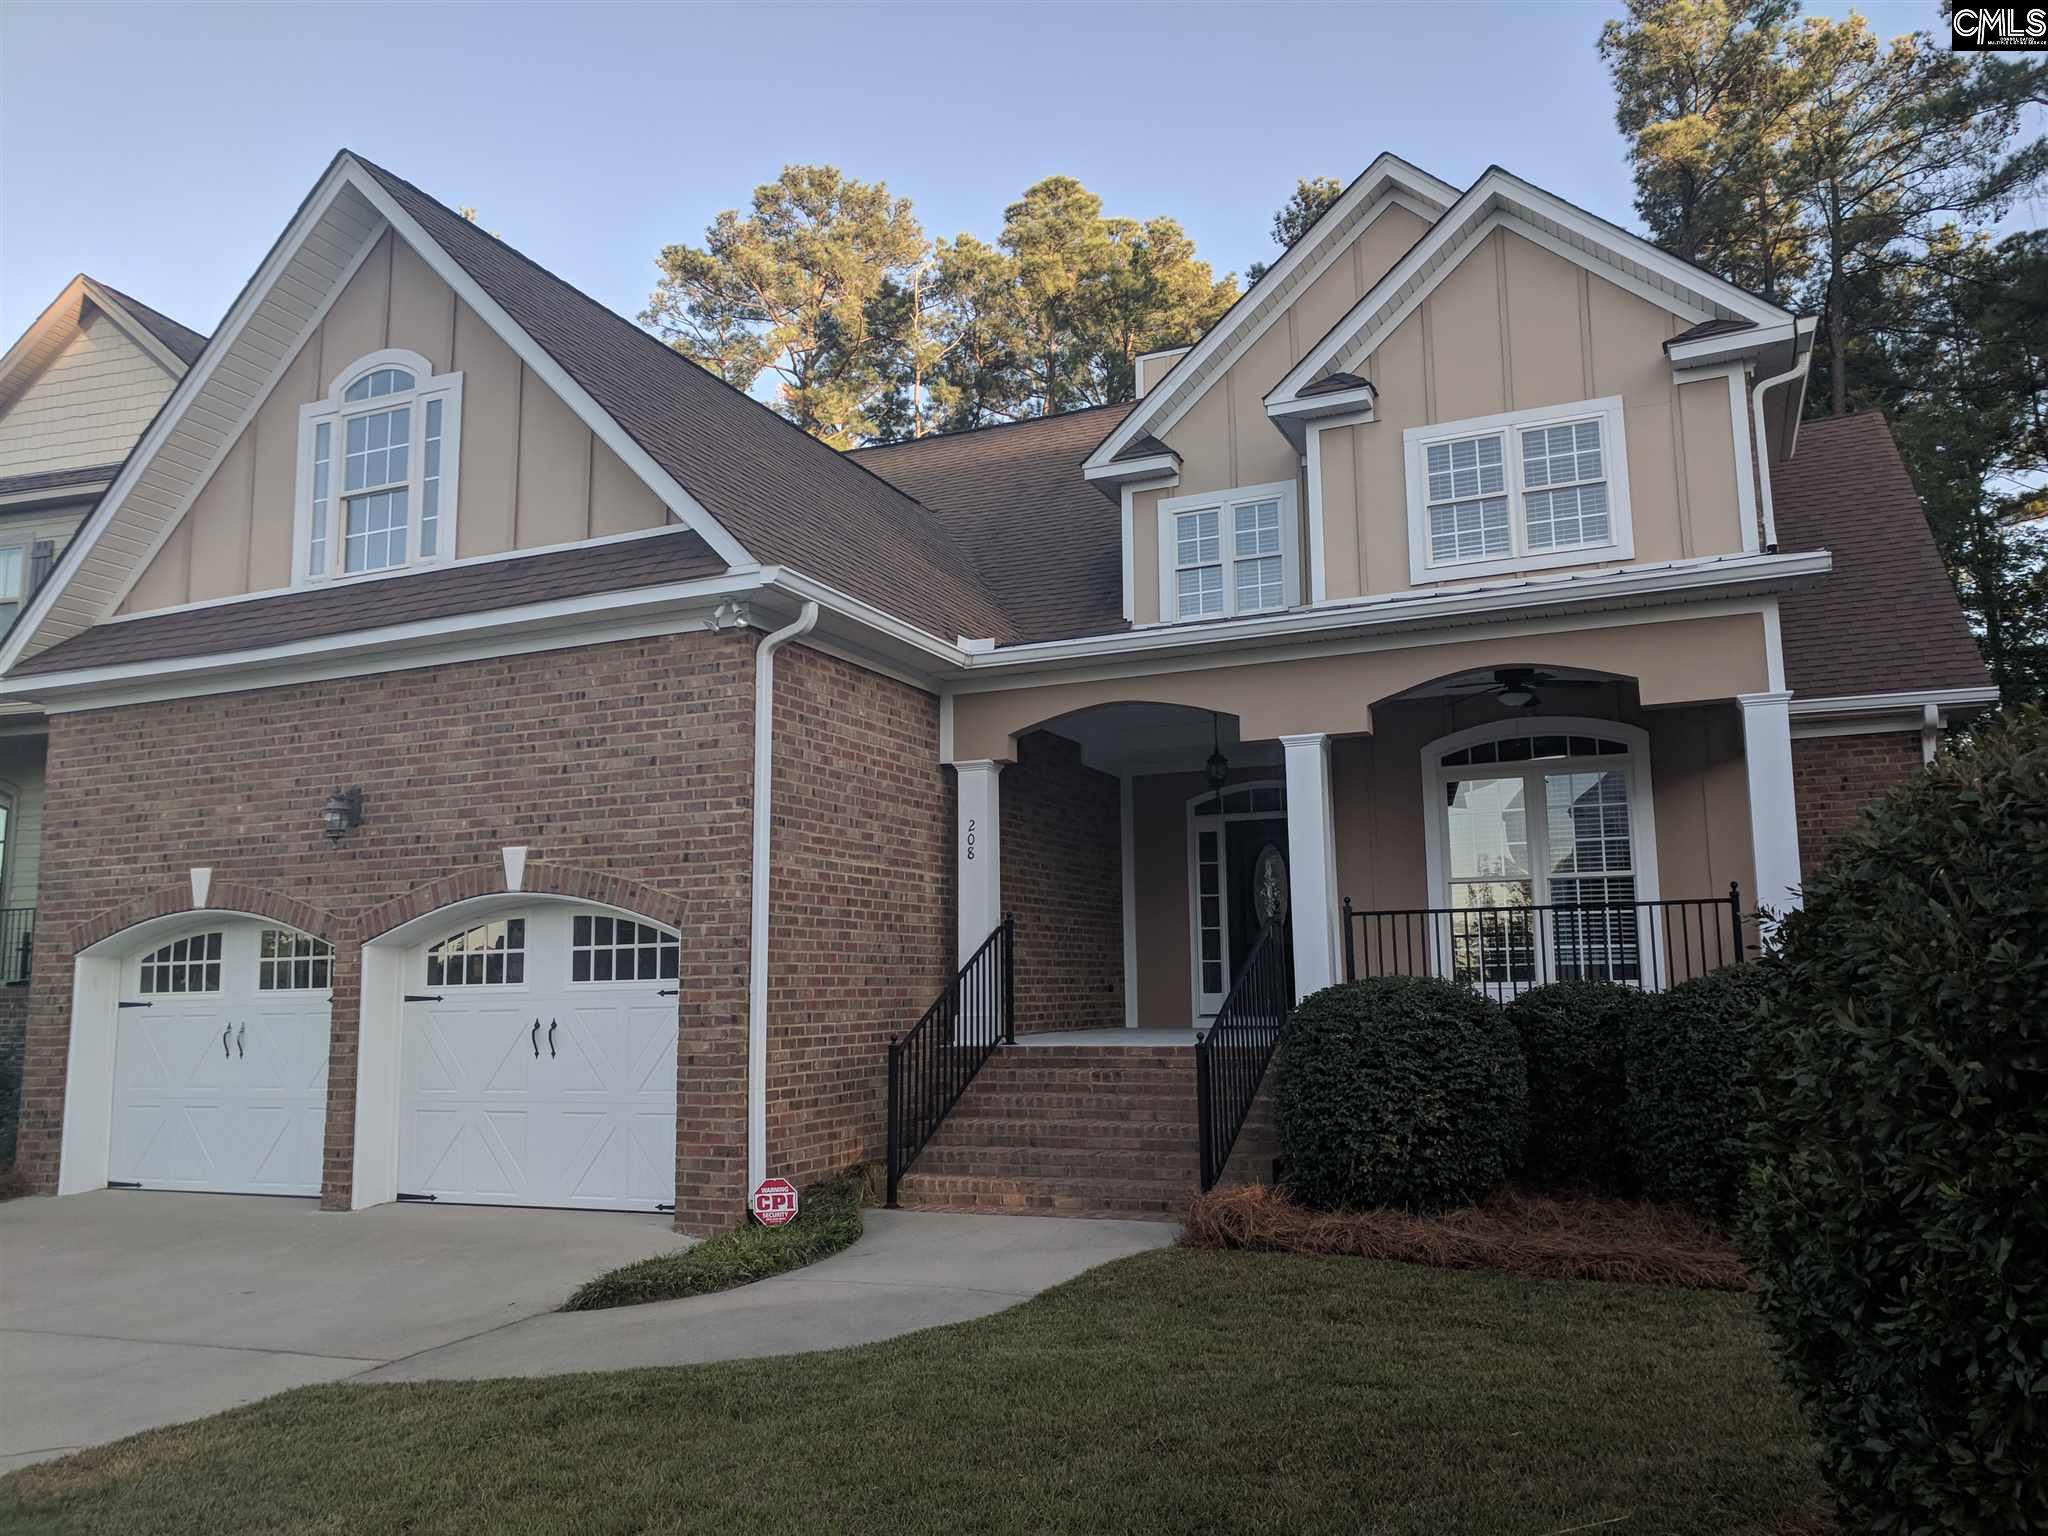 208 Harbor Vista Lexington, SC 29072